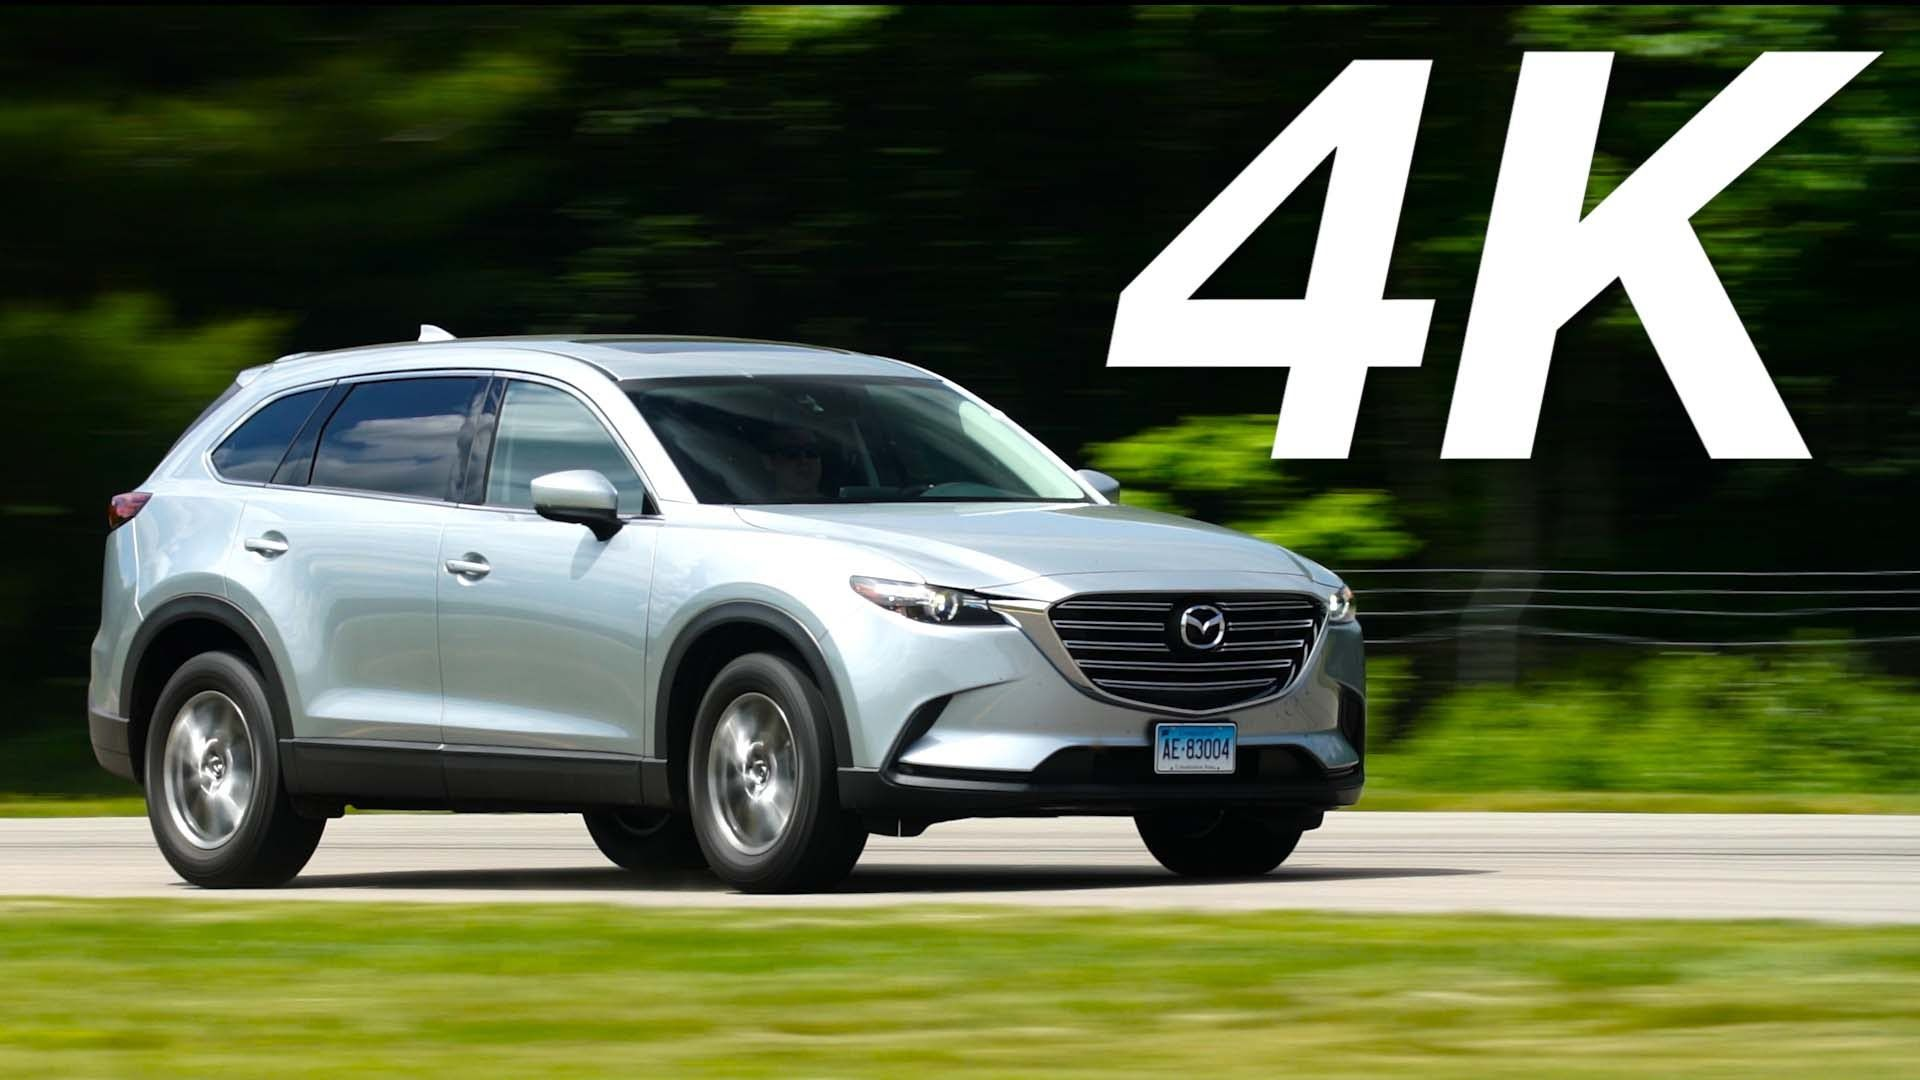 Most affordable three row SUVs are mundane to drive but the Mazda